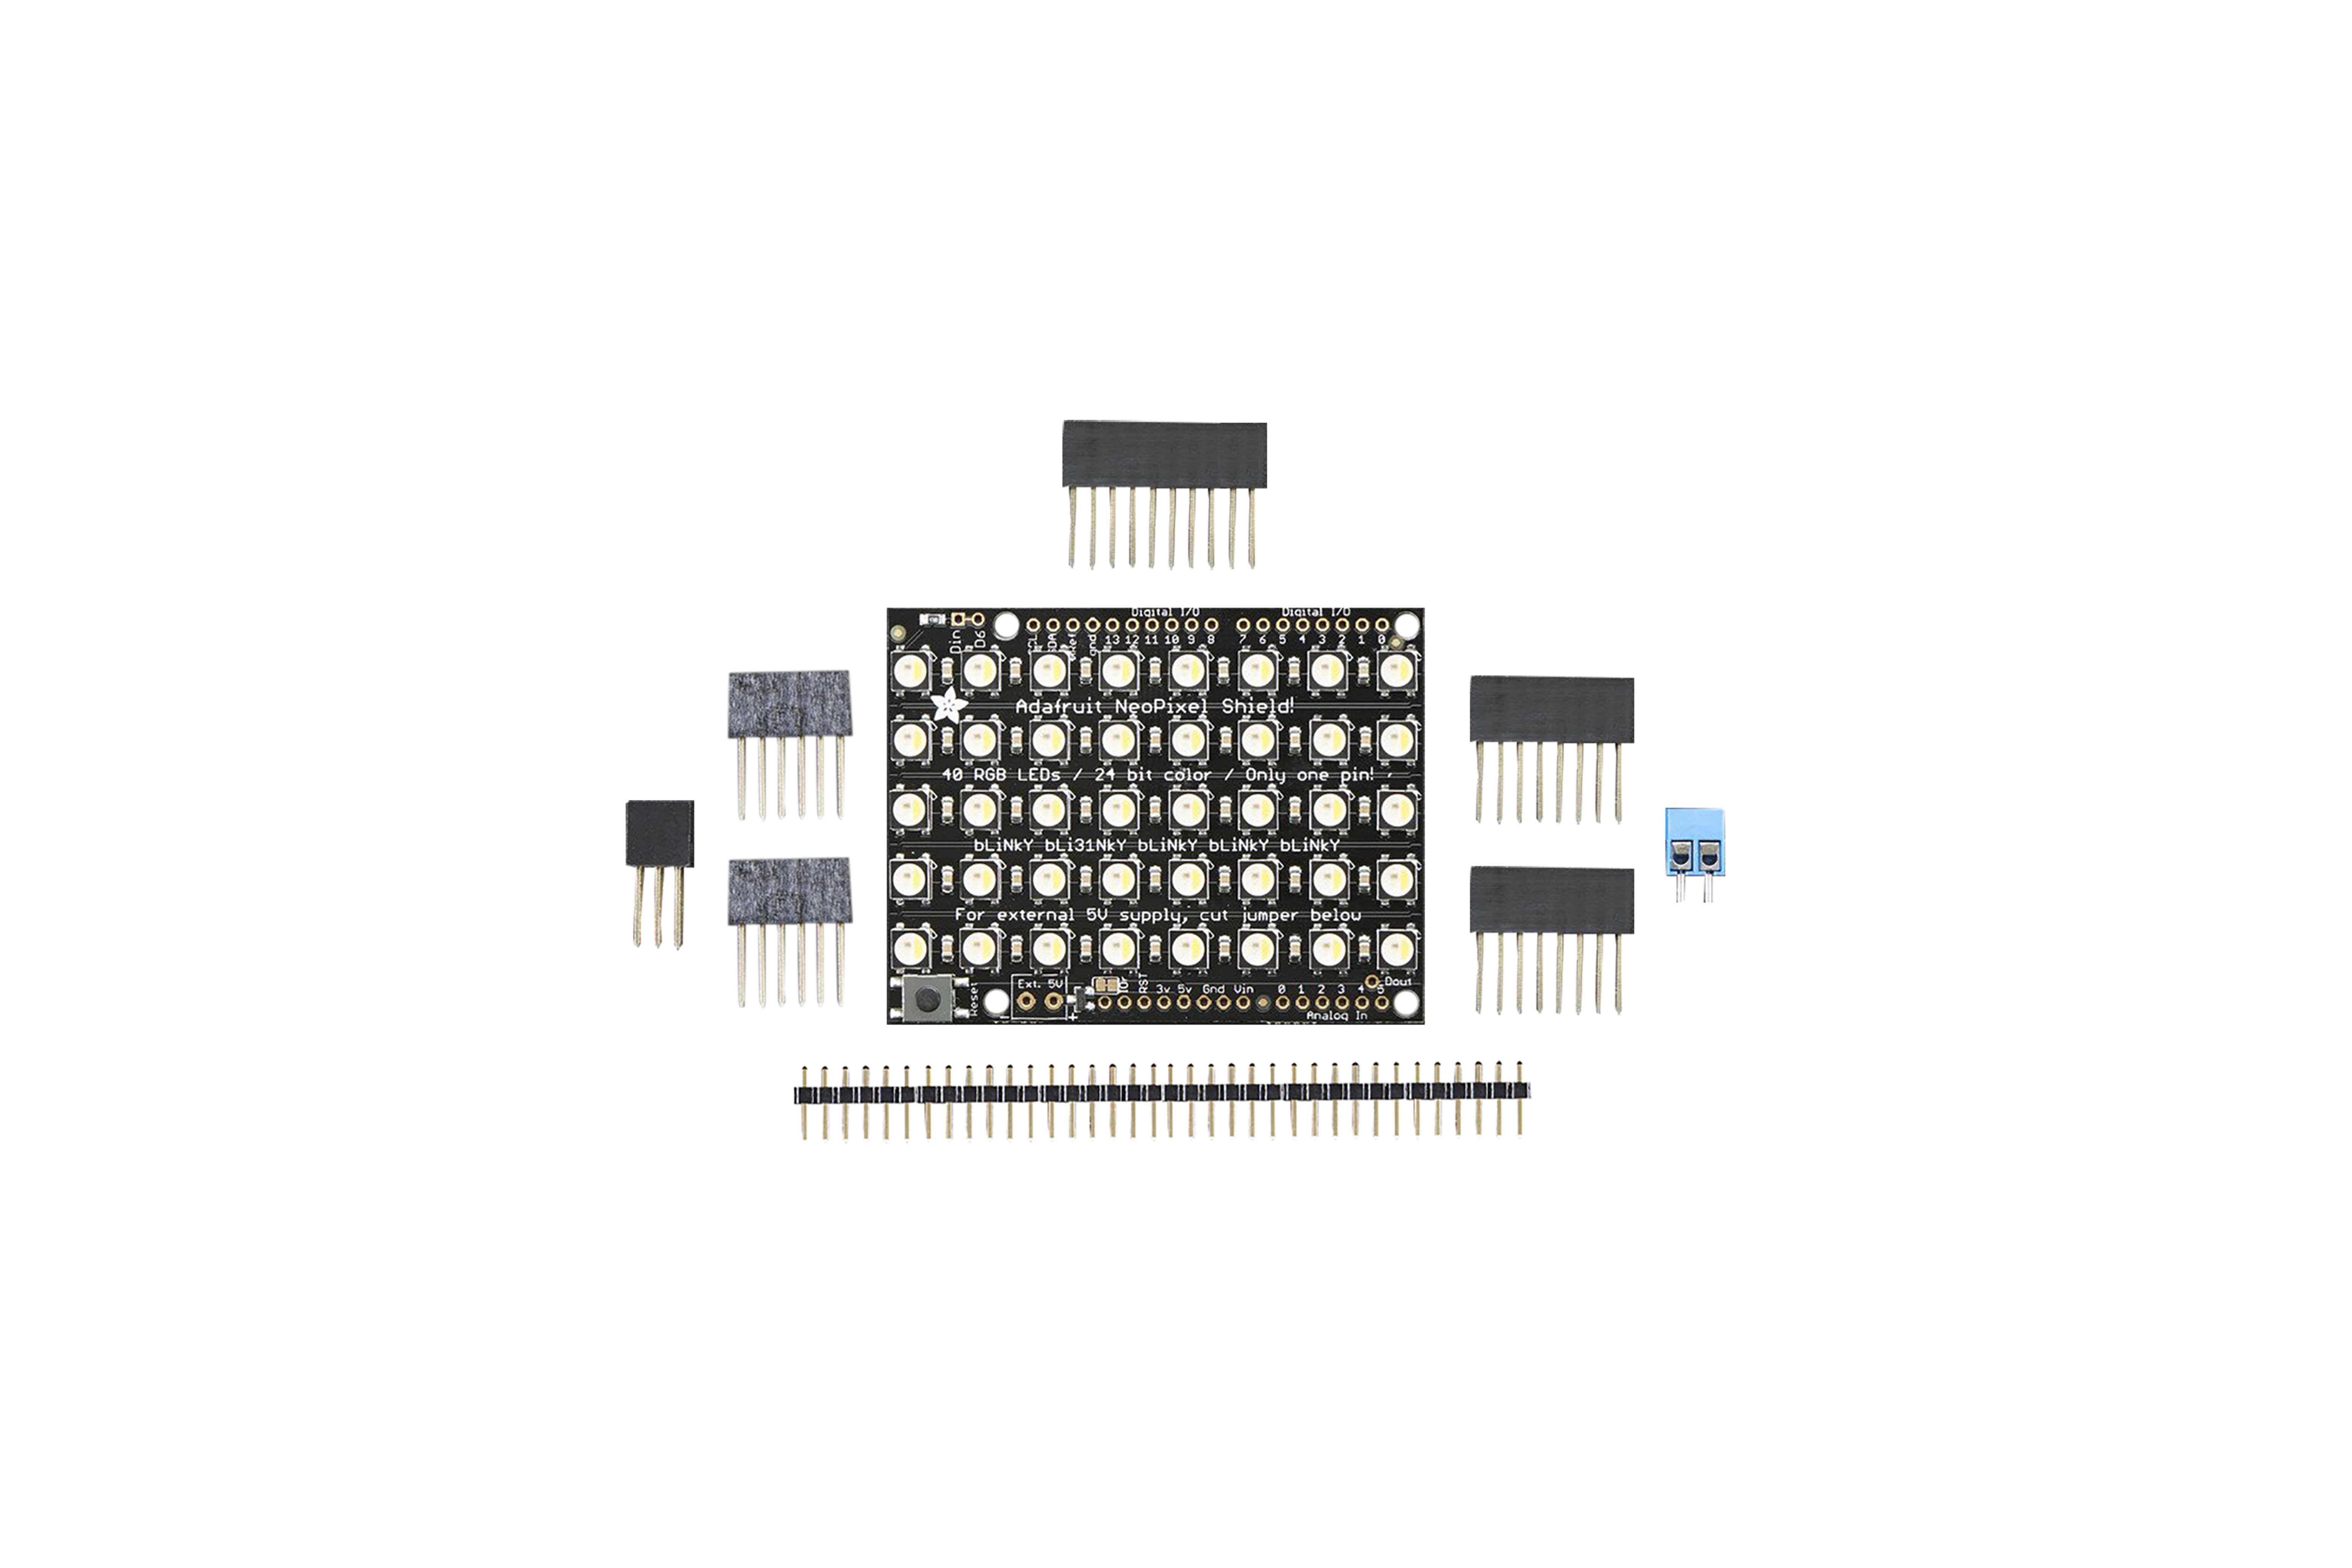 PROTECTION NEOPIXEL 40 RGBW LED PROTECTION 6000K